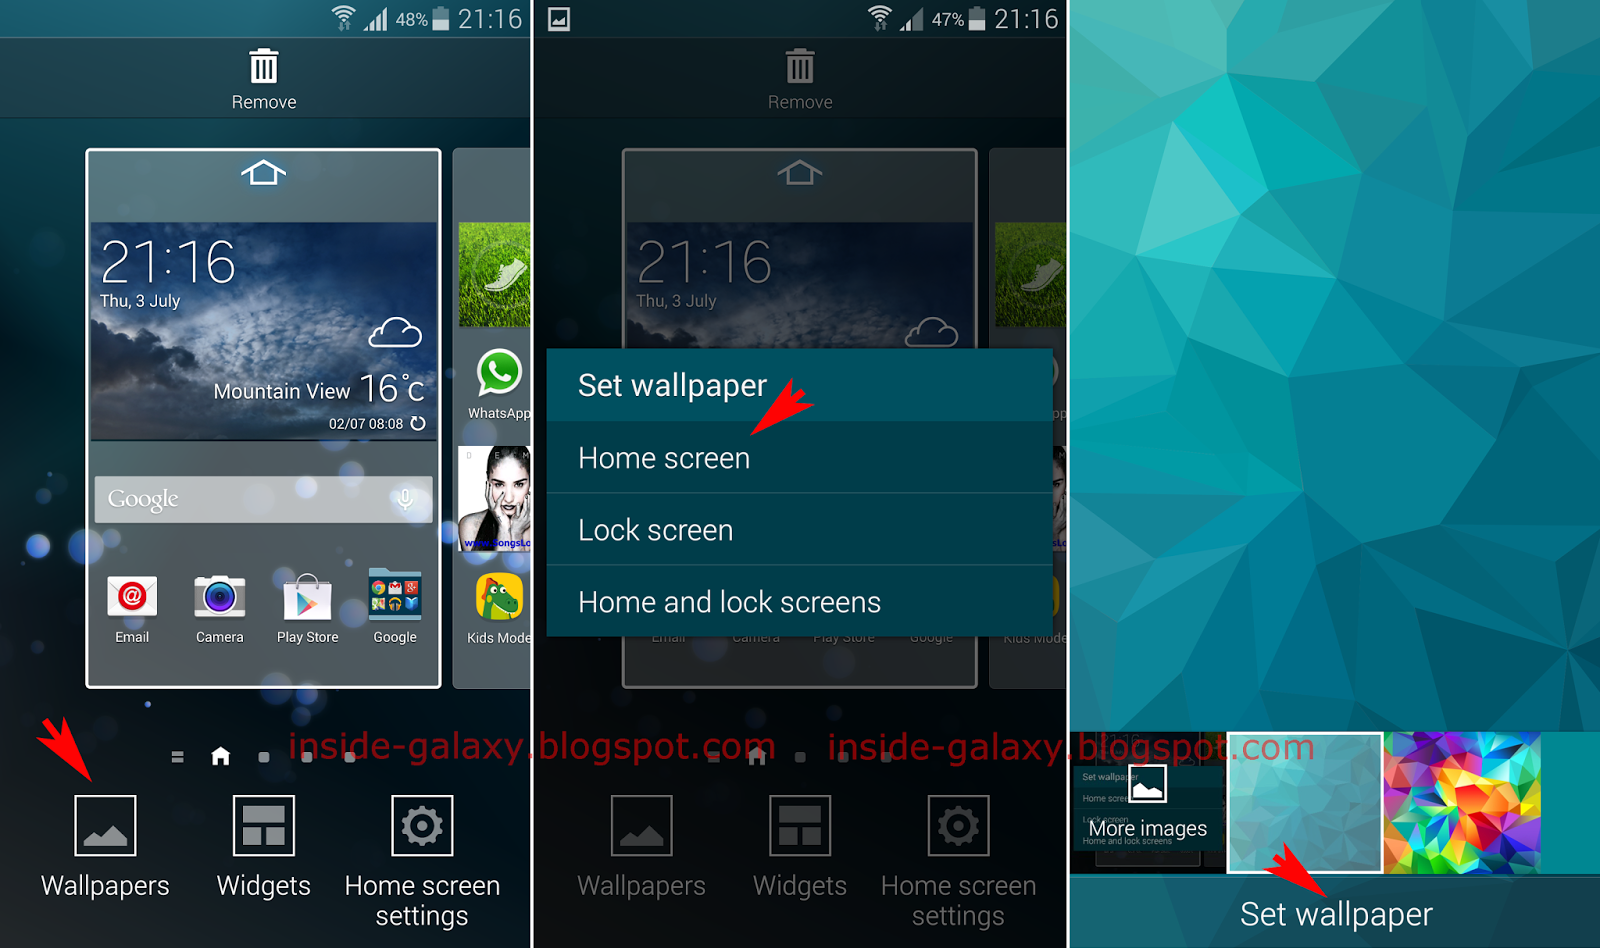 Inside Galaxy Samsung Galaxy S5 How To Change Wallpaper In Android 4 4 2 Kitkat